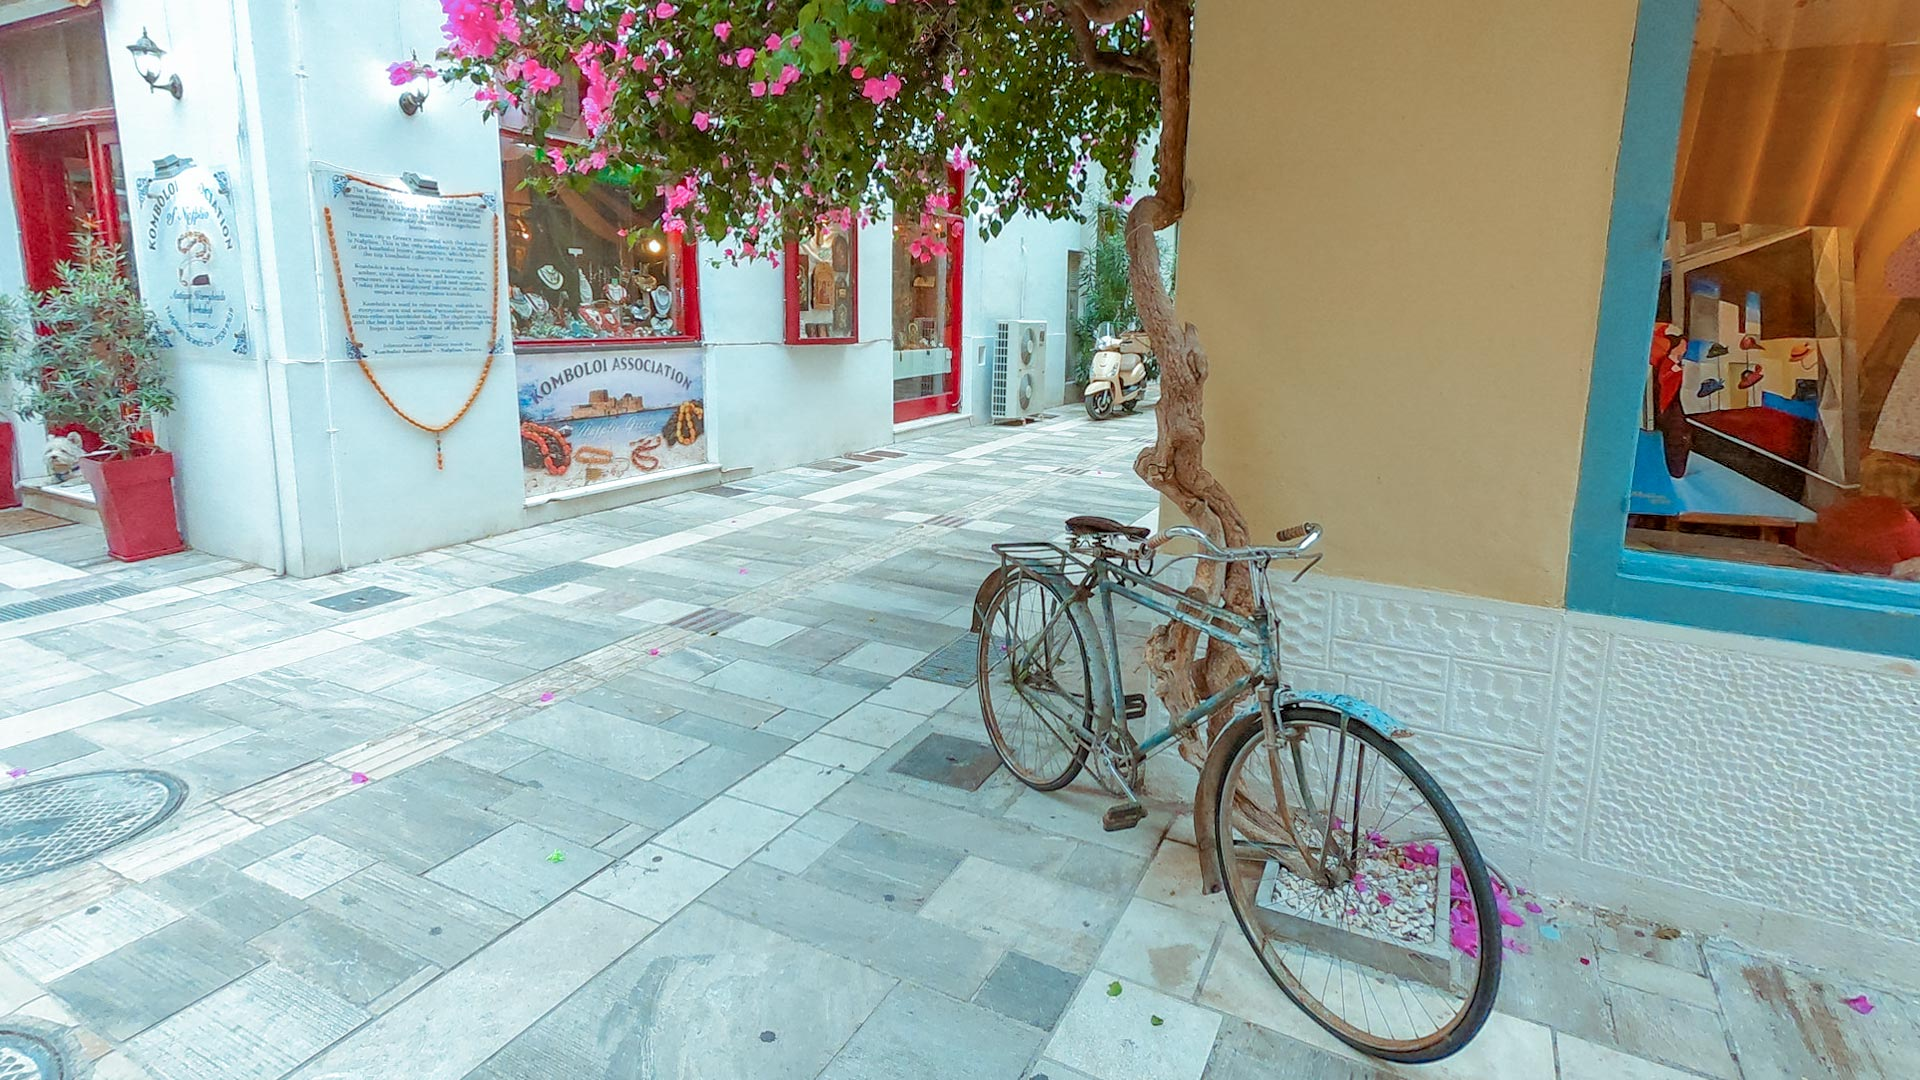 Whether you're admiring the Venetian architecture or strolling along the waterfront, Nafplio's Old Town is the perfect romantic getaway